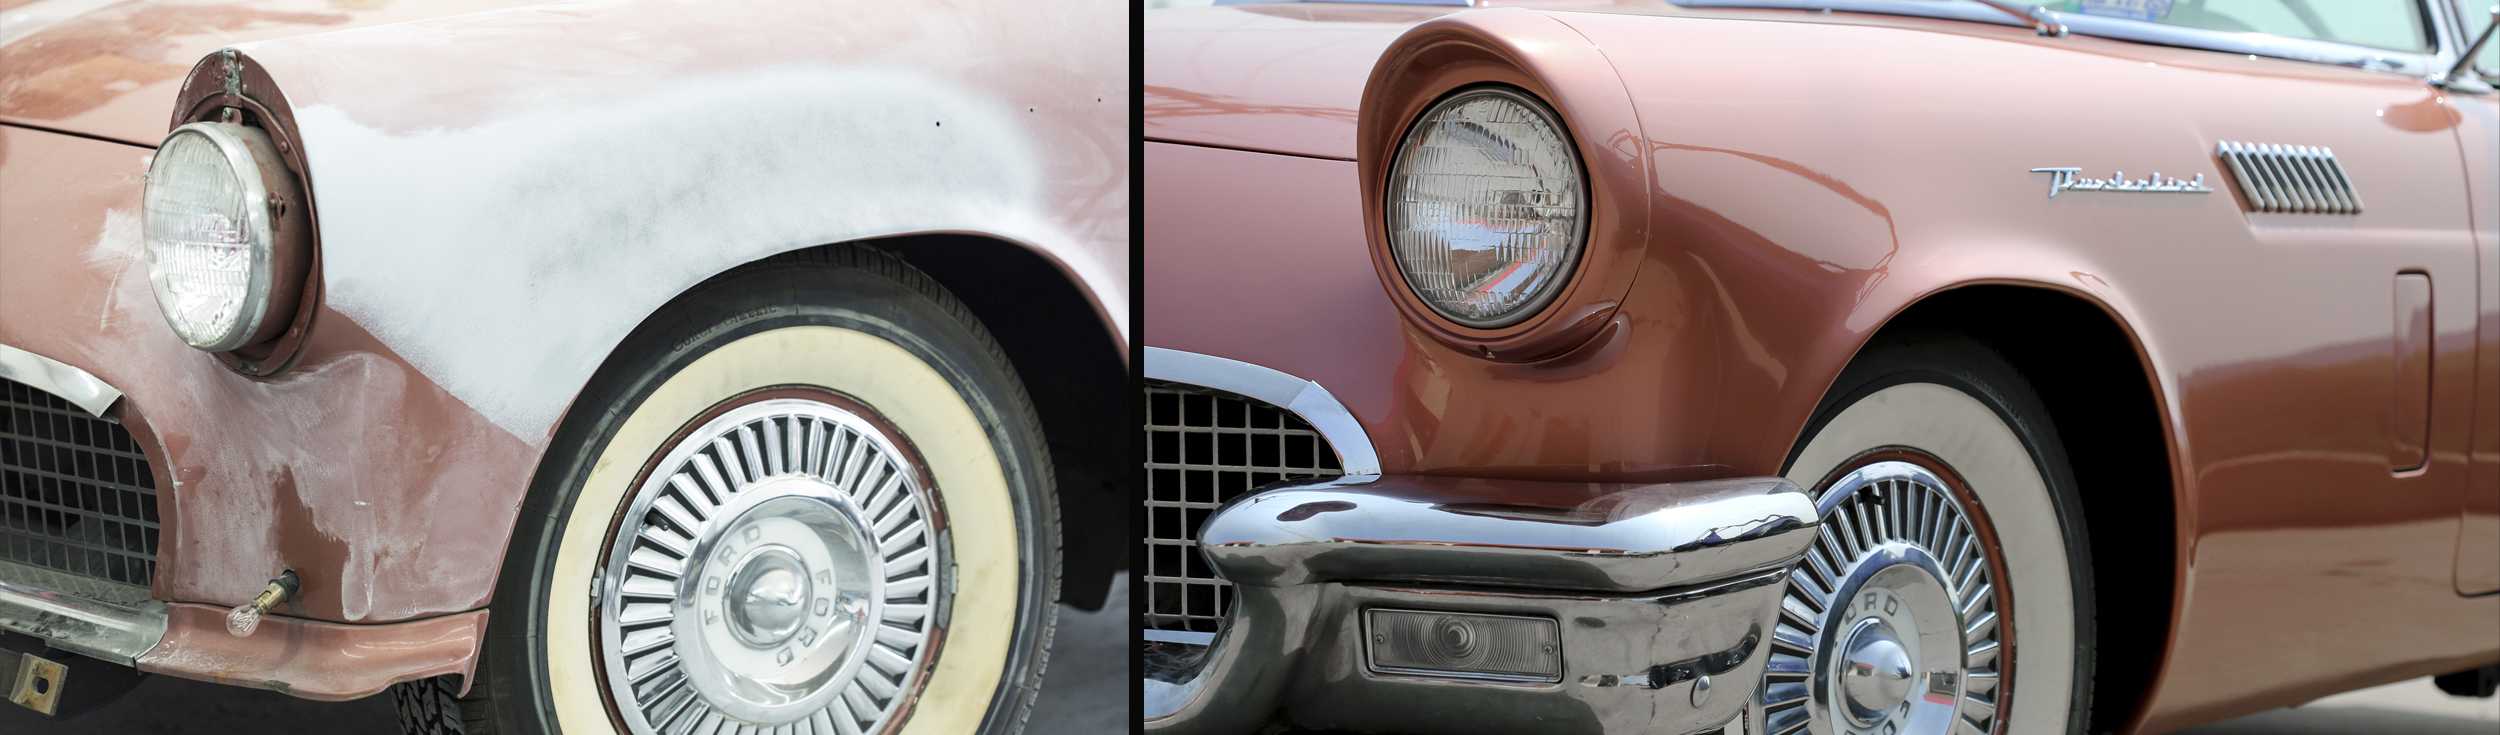 Classic Car Collision Repair and Auto Body   Paint Restoration Services T Bird Auto Body and Paint